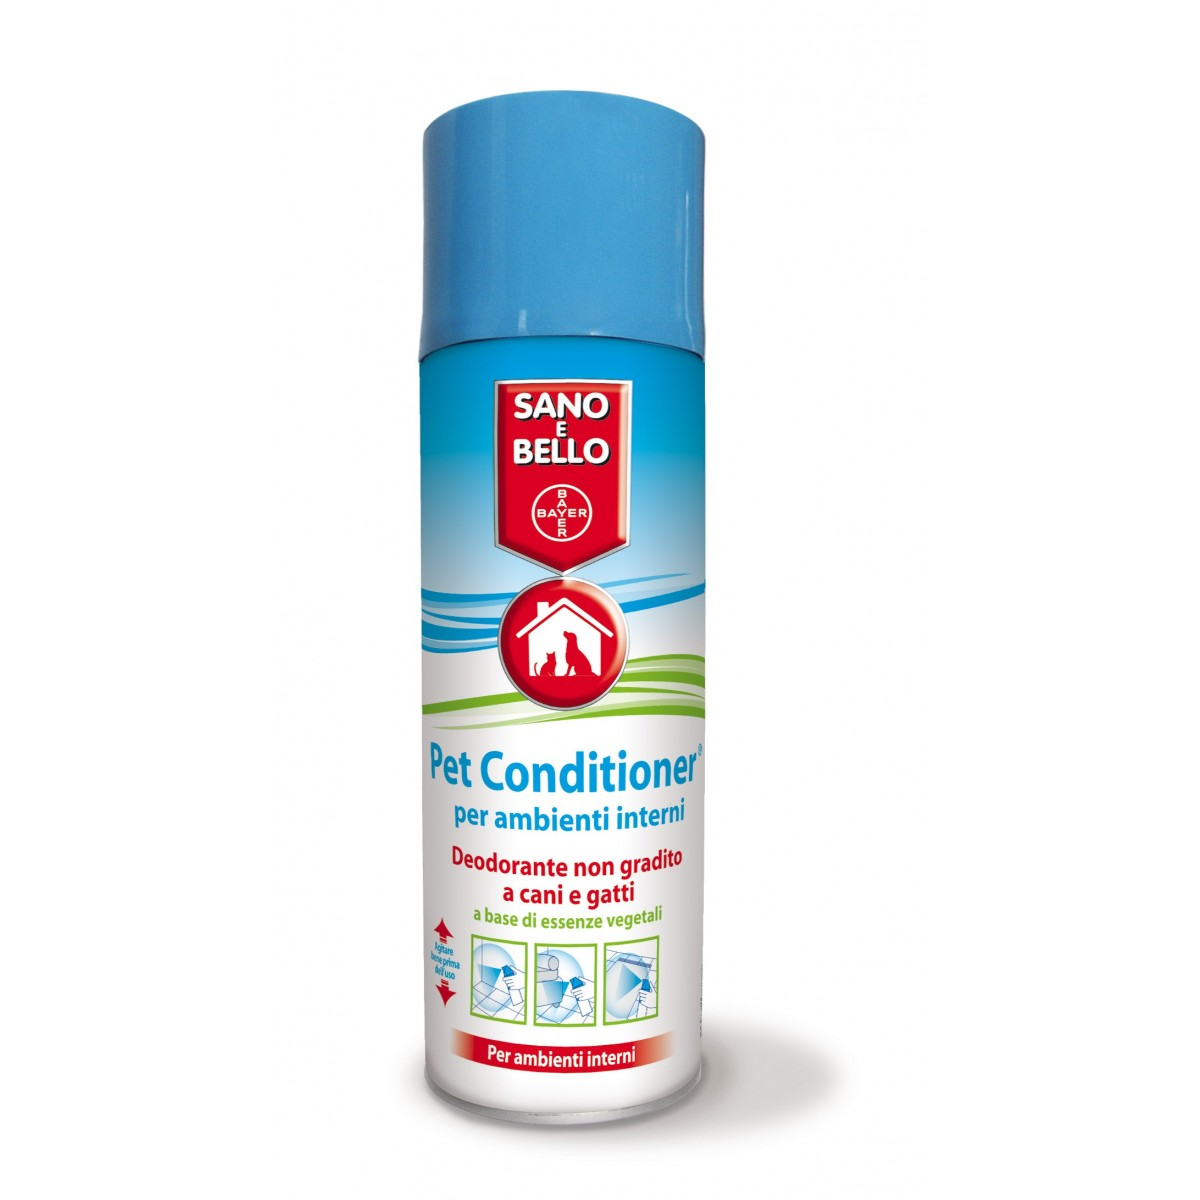 Pet Conditioner Bayer REPELLENTE - diabituante per cani e gatti per INTERNI 300ml